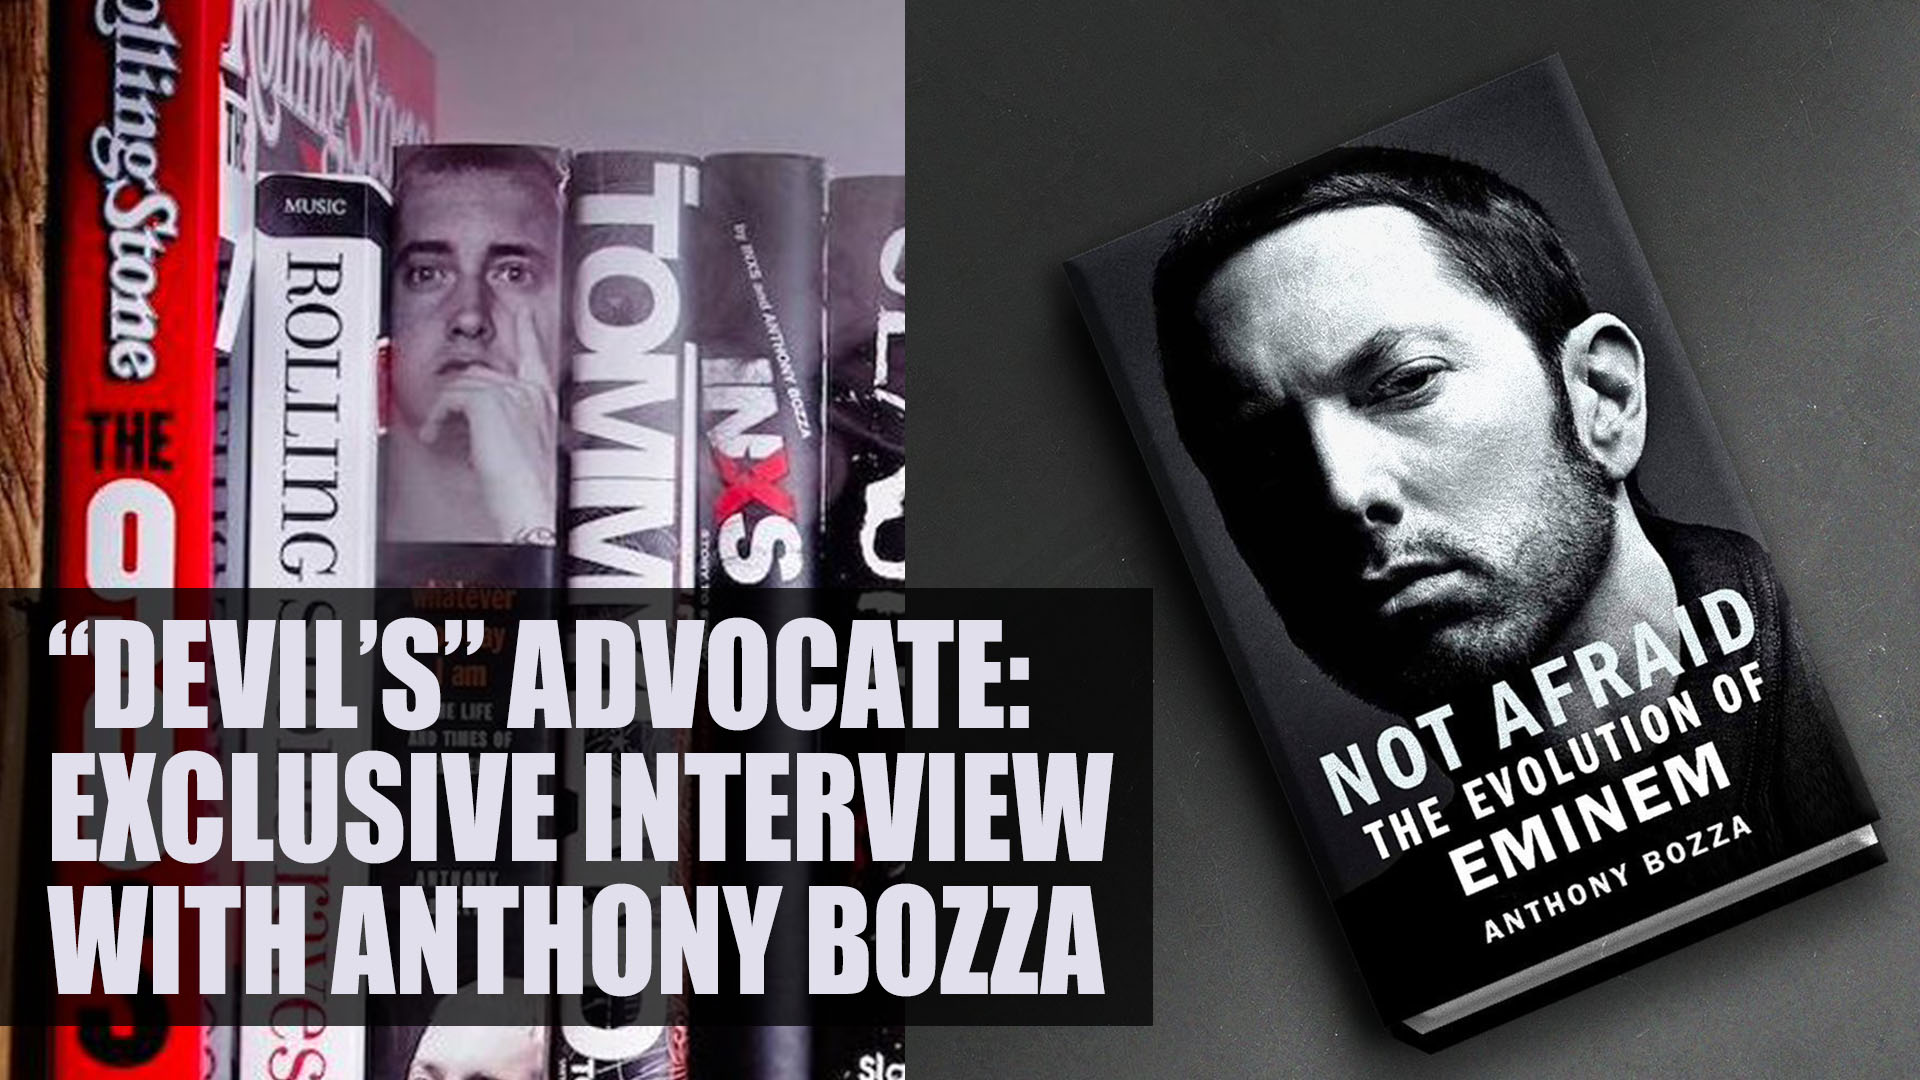 """Devil's"" Advocate: ePro Exclusive Interview with Anthony Bozza, the Author of ""Not Afraid. The Evolution of Eminem"""